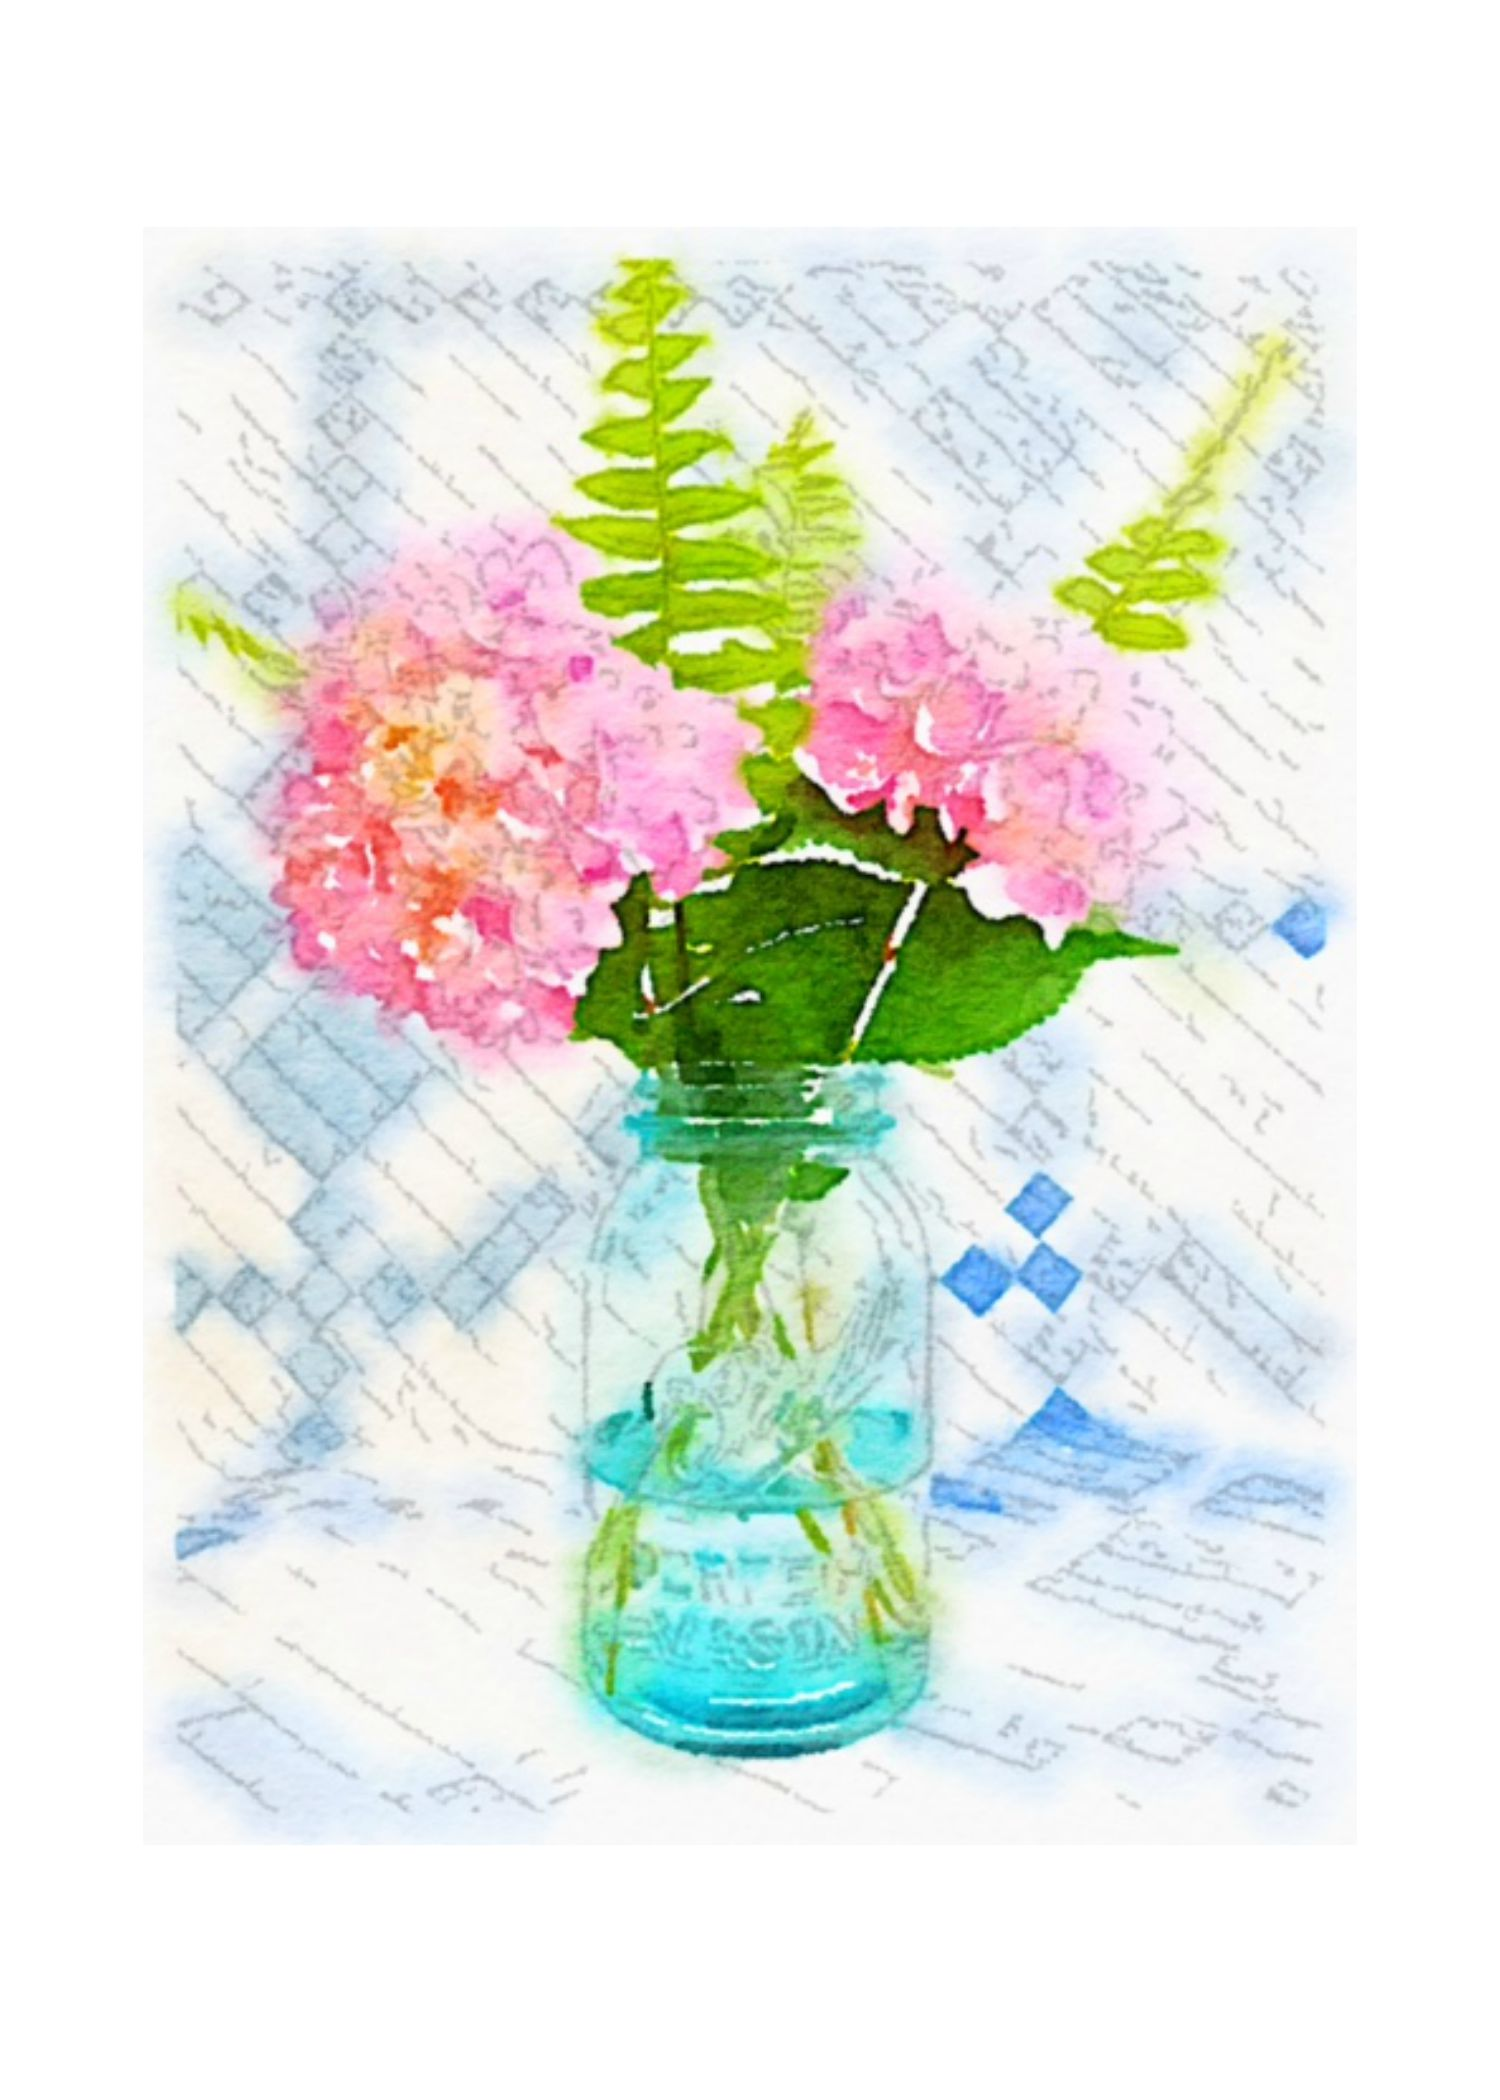 Free Summer Printables - Hydrangeas in Mason Jar Watercolor Print via On Sutton Place | http://www.roseclearfield.com